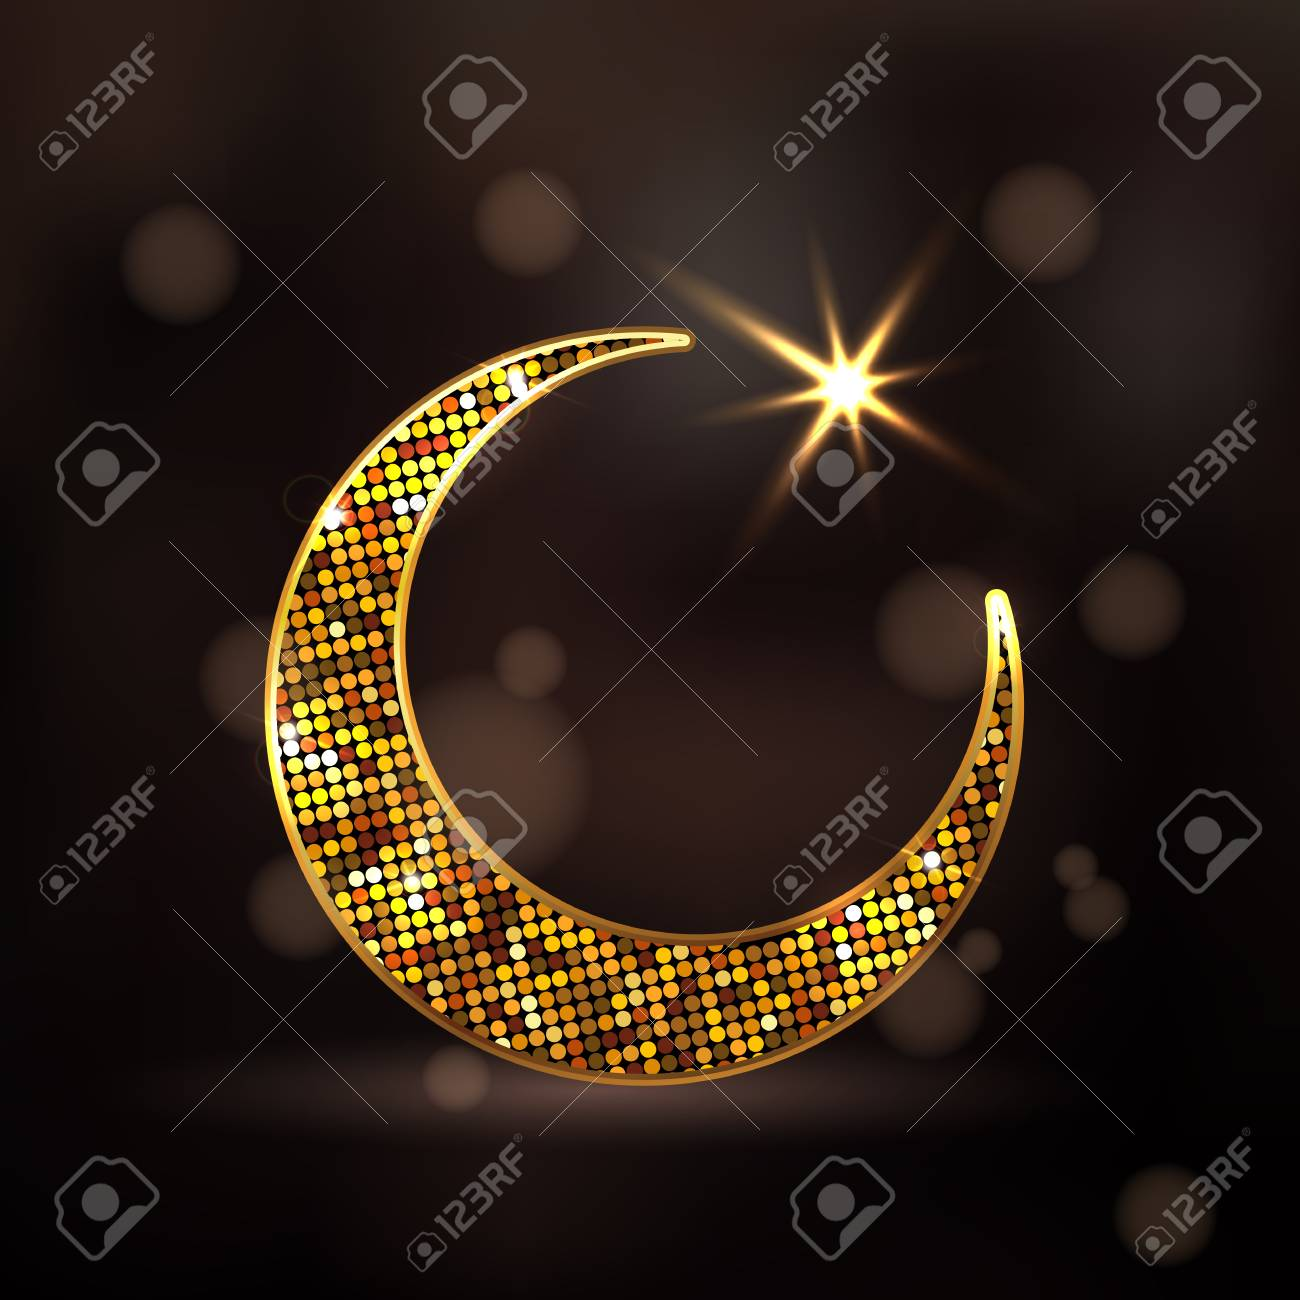 Golden dotted design decorated crescent moon and glowing star